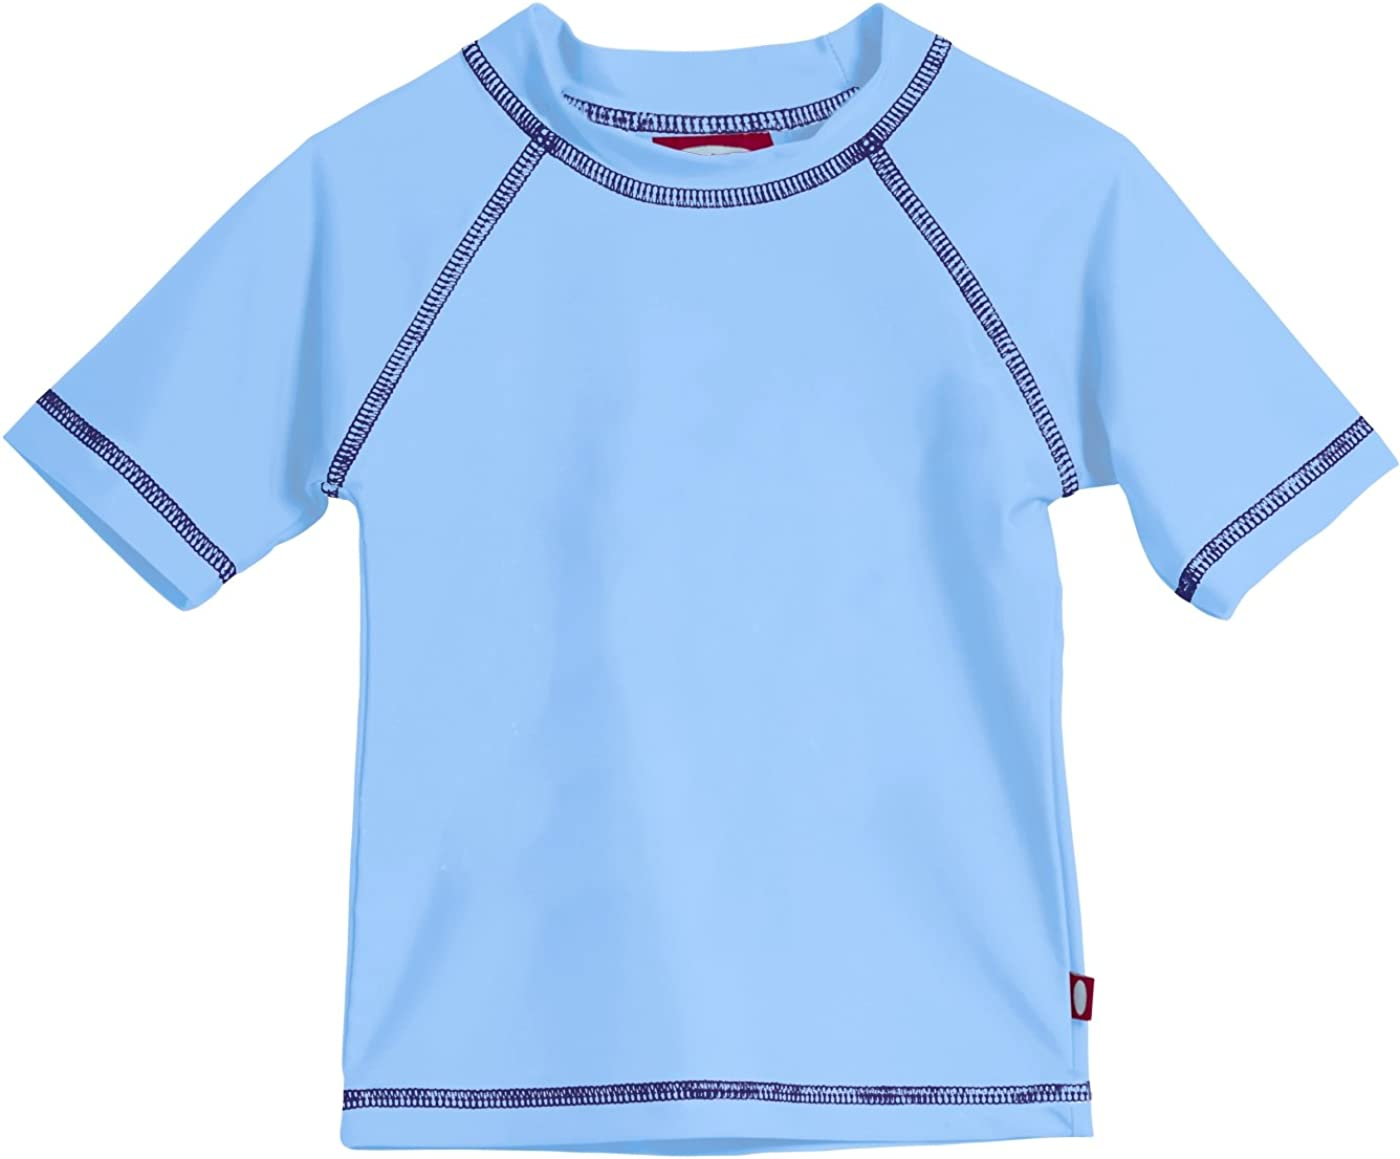 Made in USA City Threads Baby Rash Guard in Long and Short Sleeves with SPF50